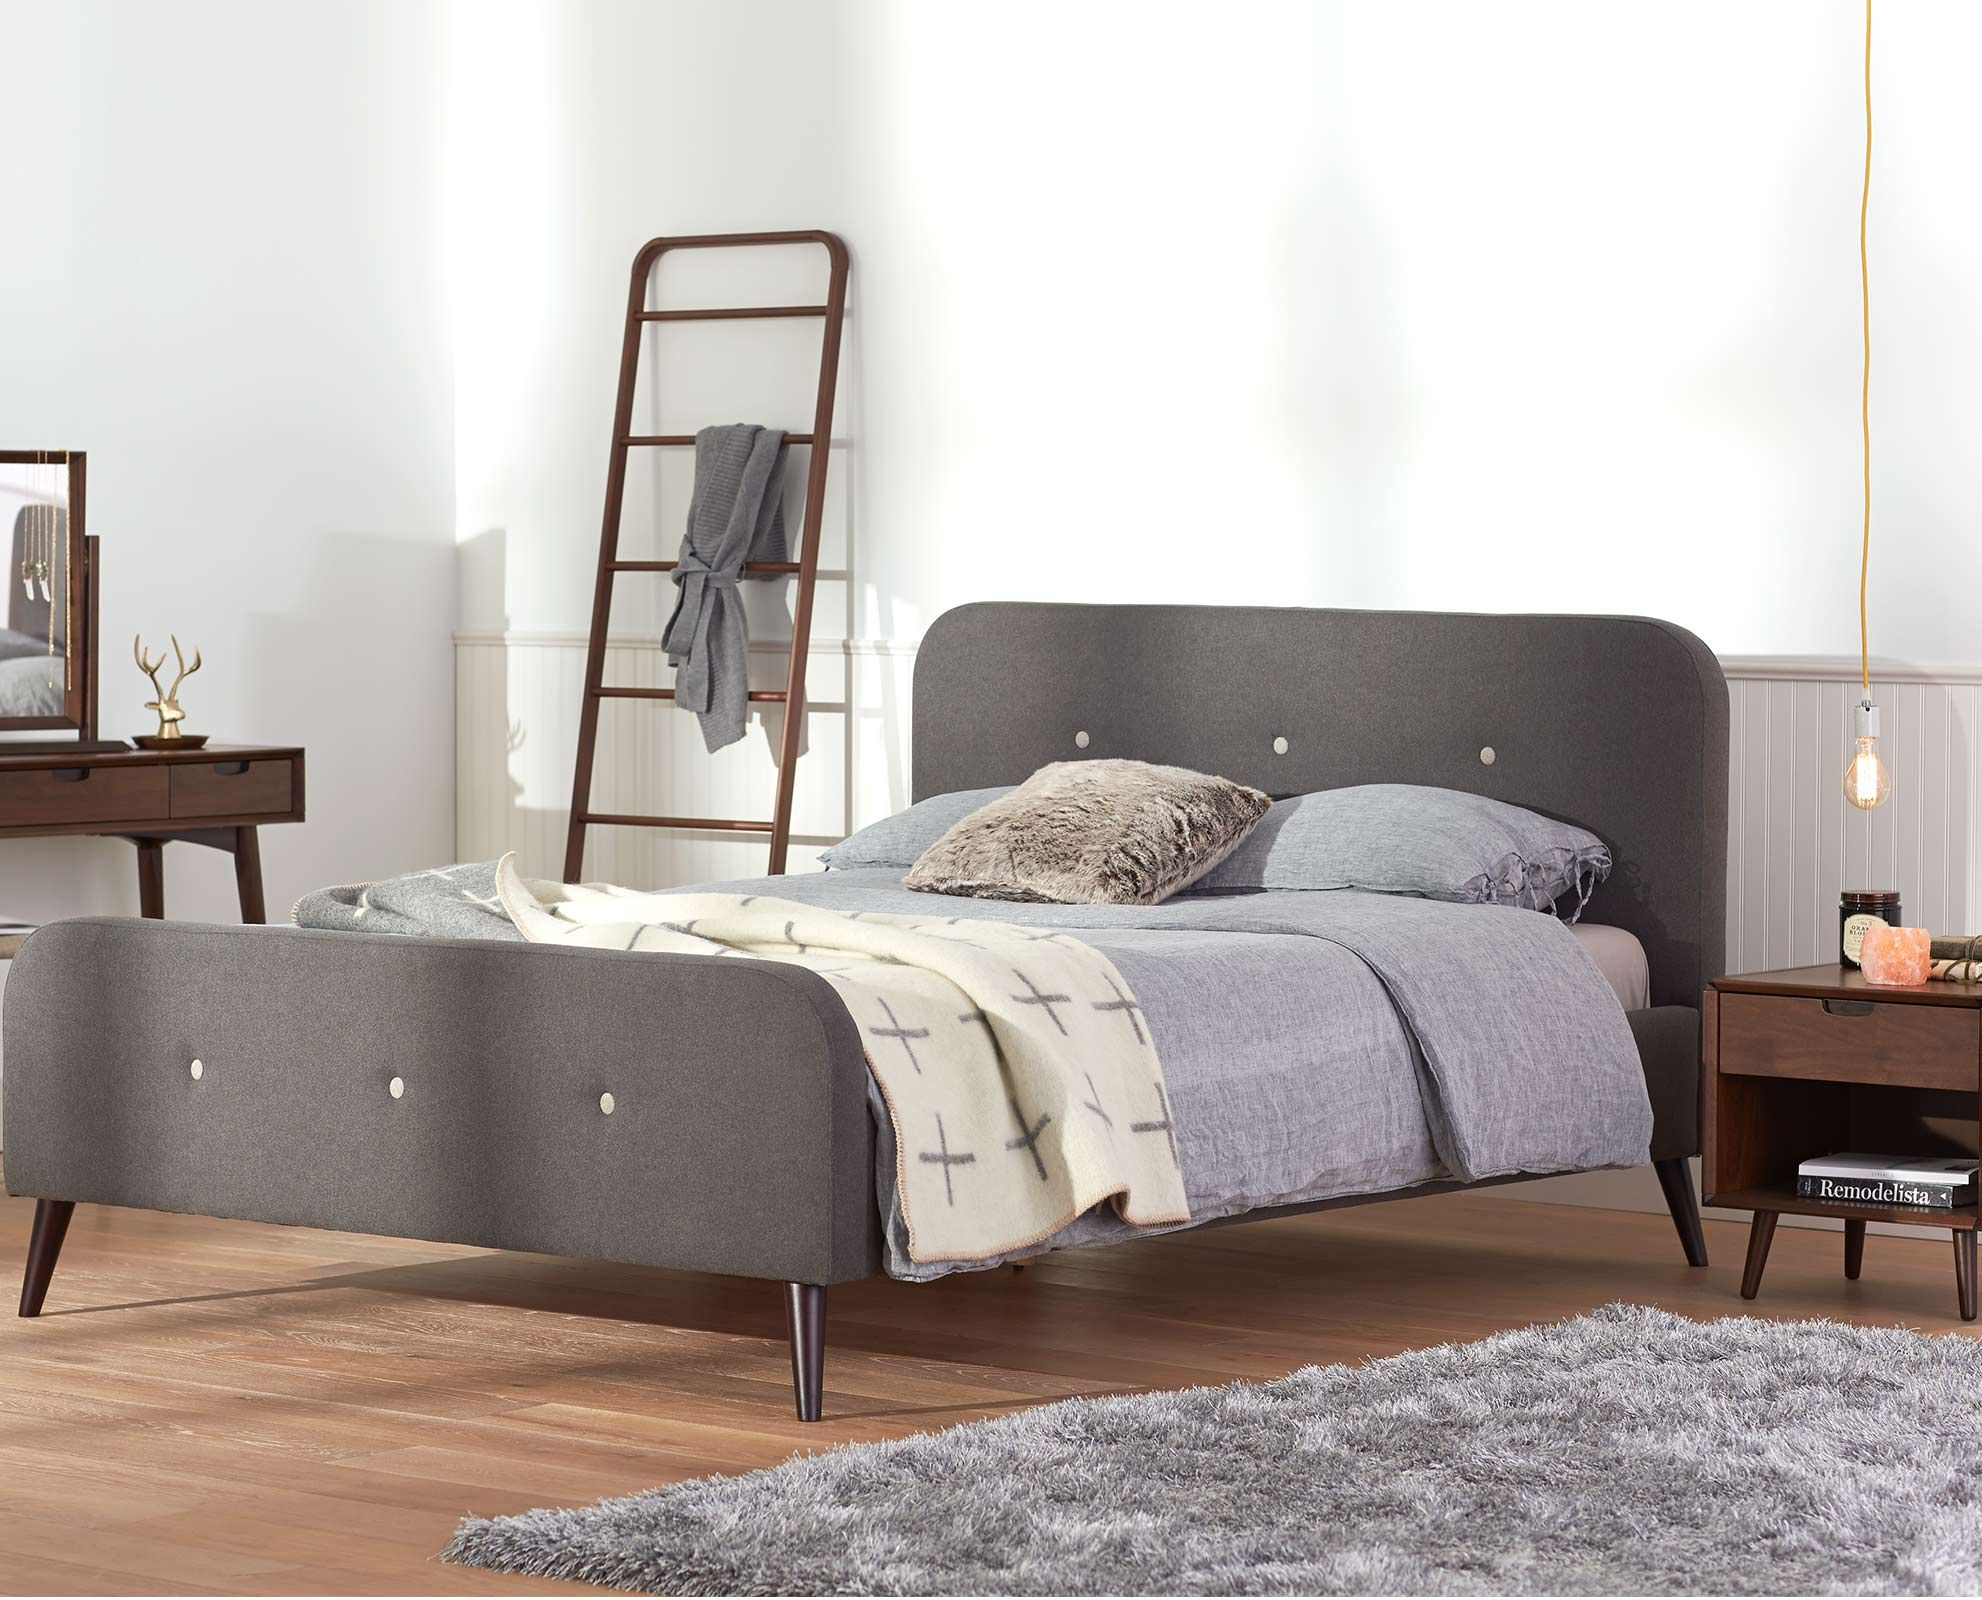 cool new scandinavian bedroom furniture 46 for interior decor home